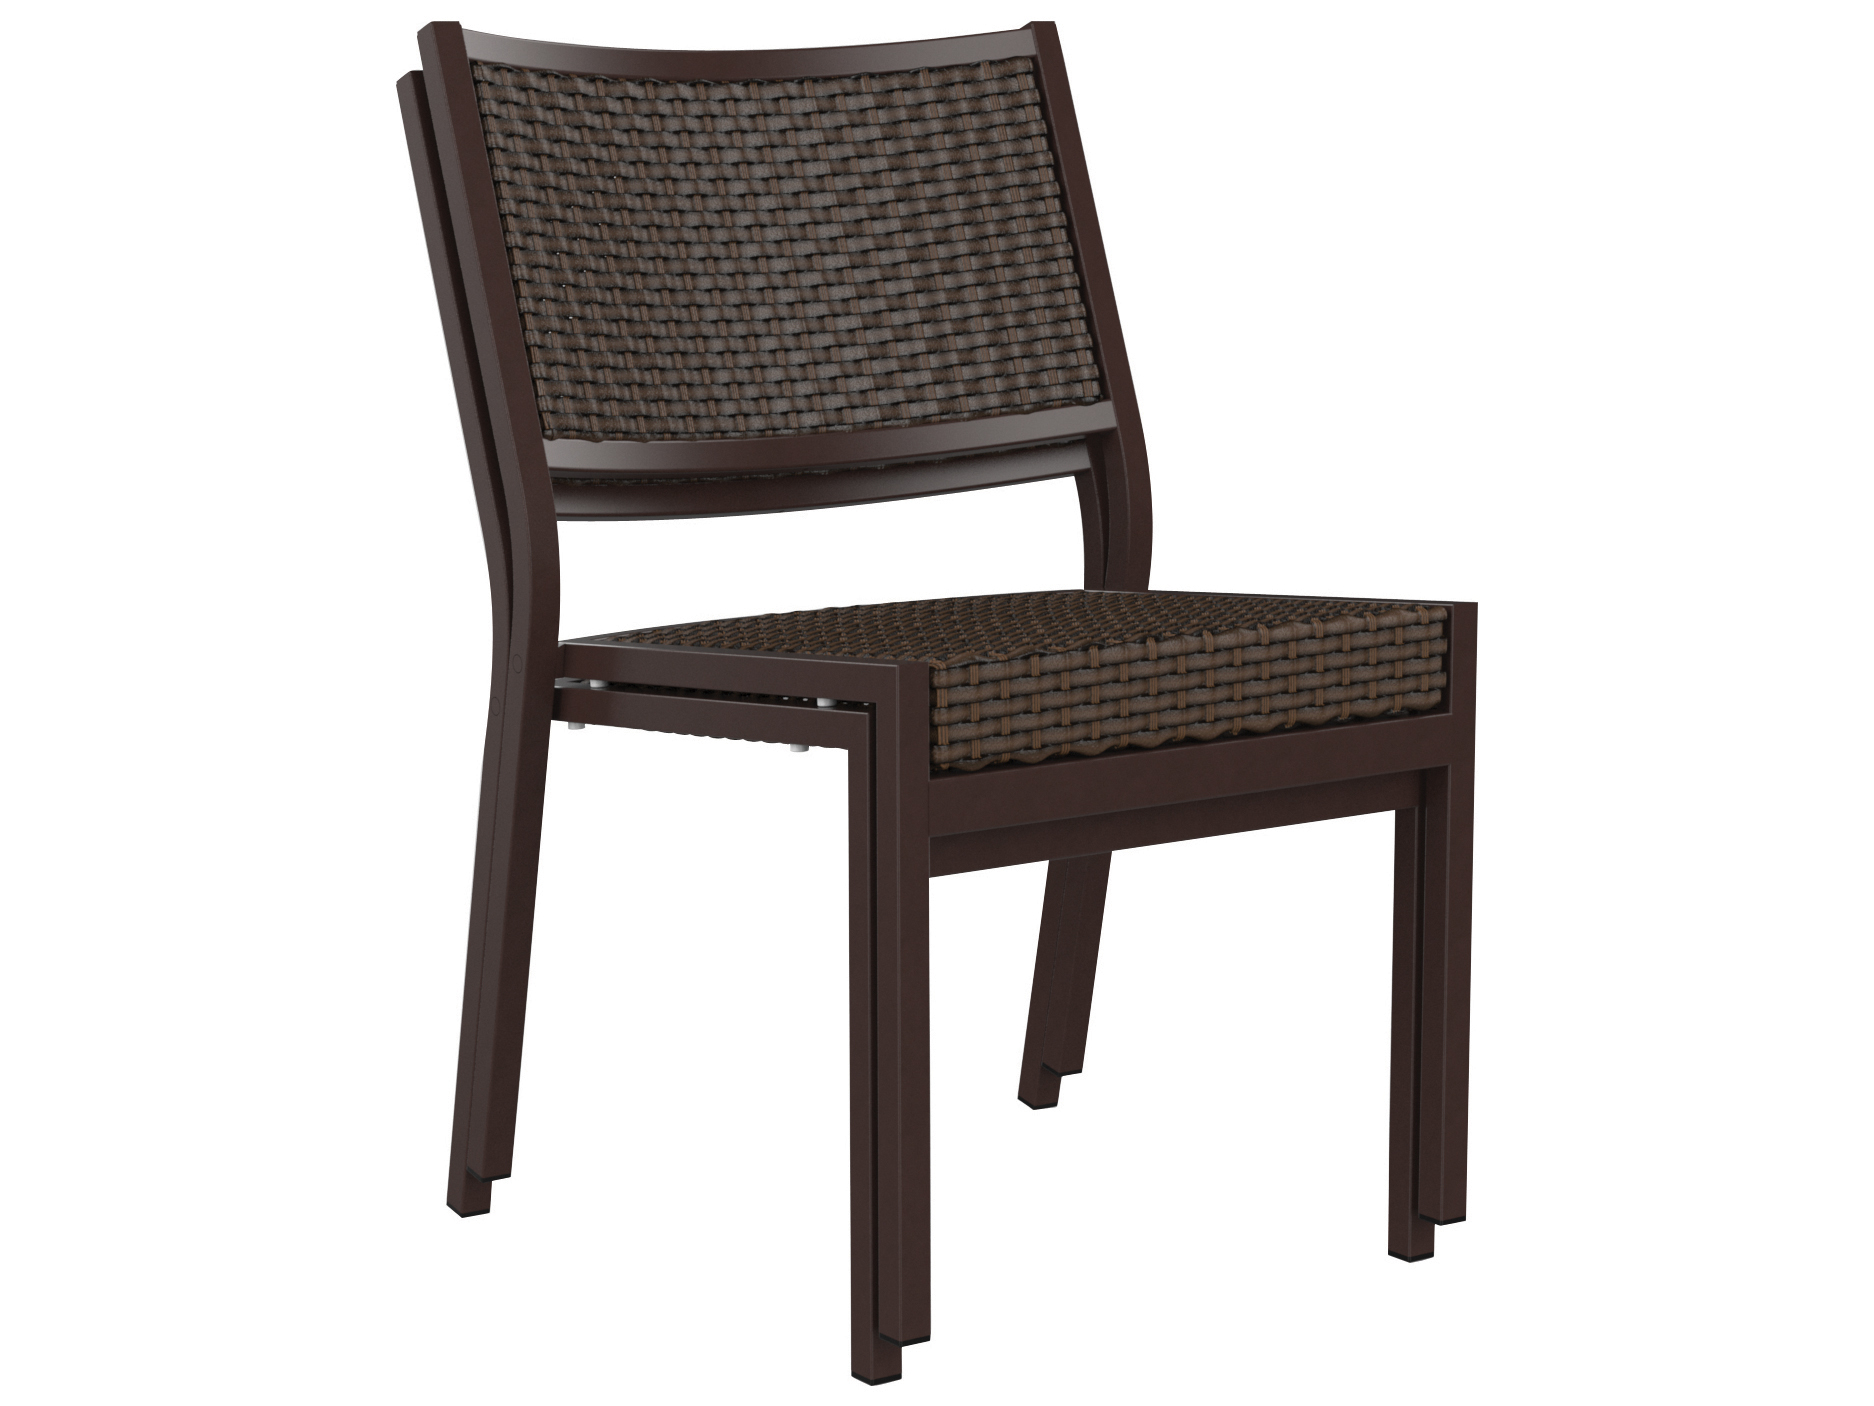 Cabana Chair Tropitone Cabana Club Woven Side Chair 591528ws